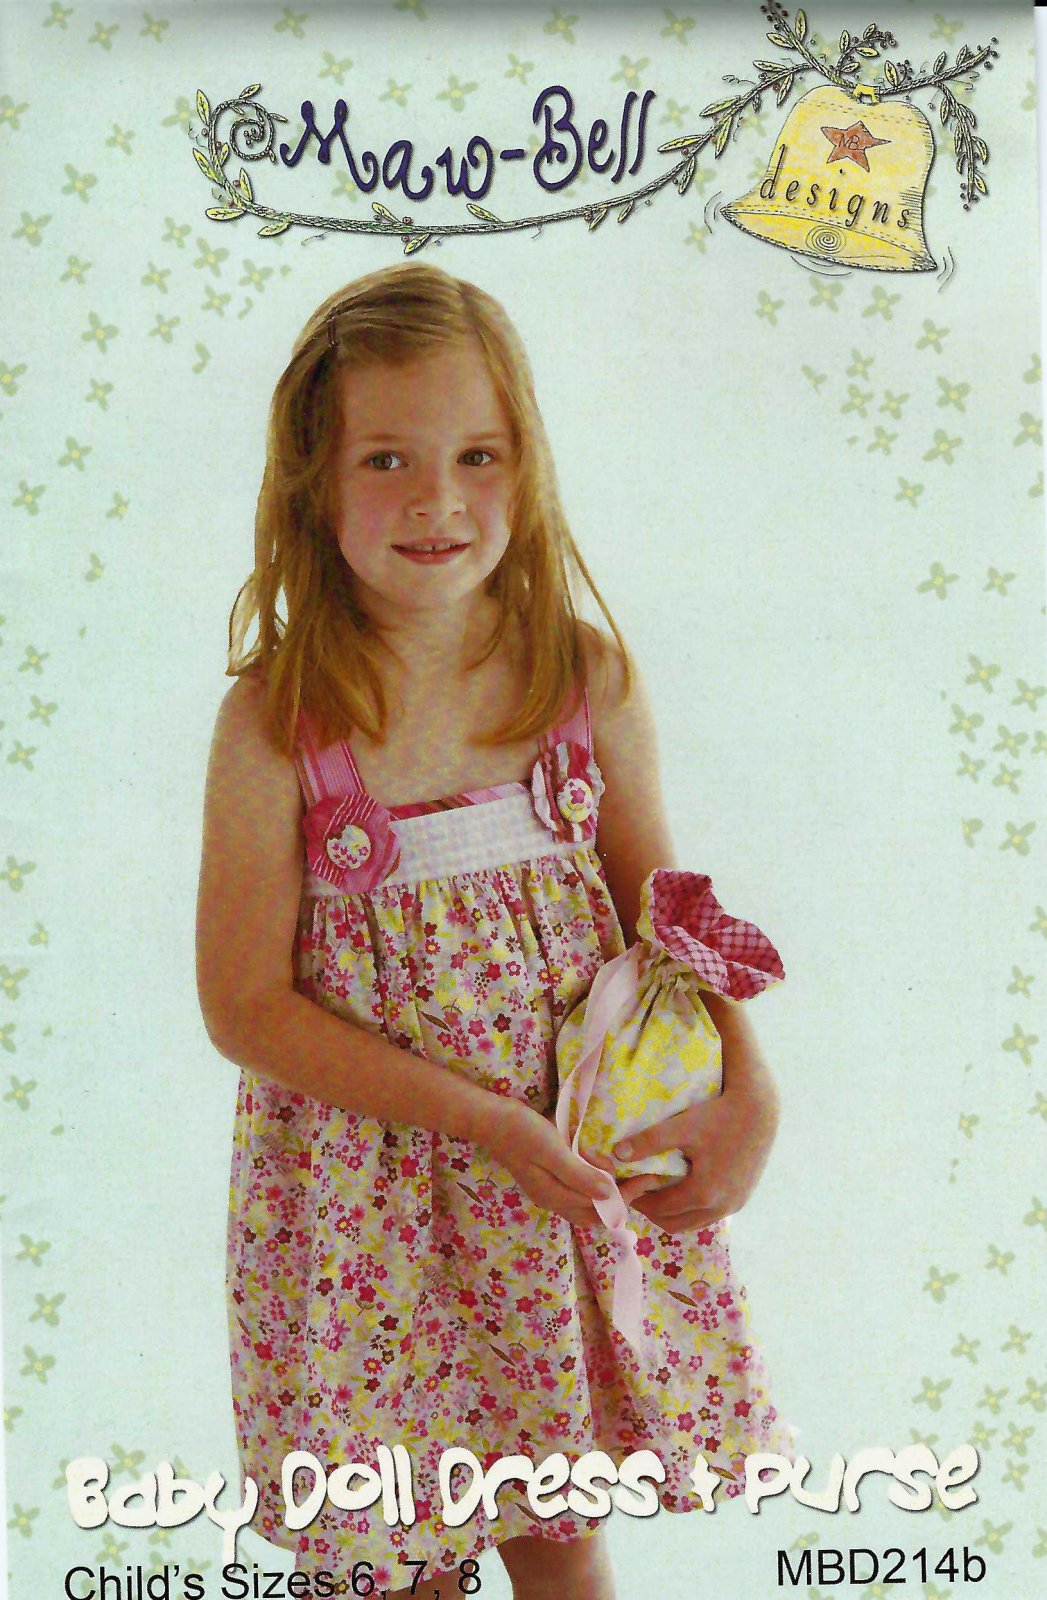 Maw-Bell  Baby Doll Dress and purse 6 - 8